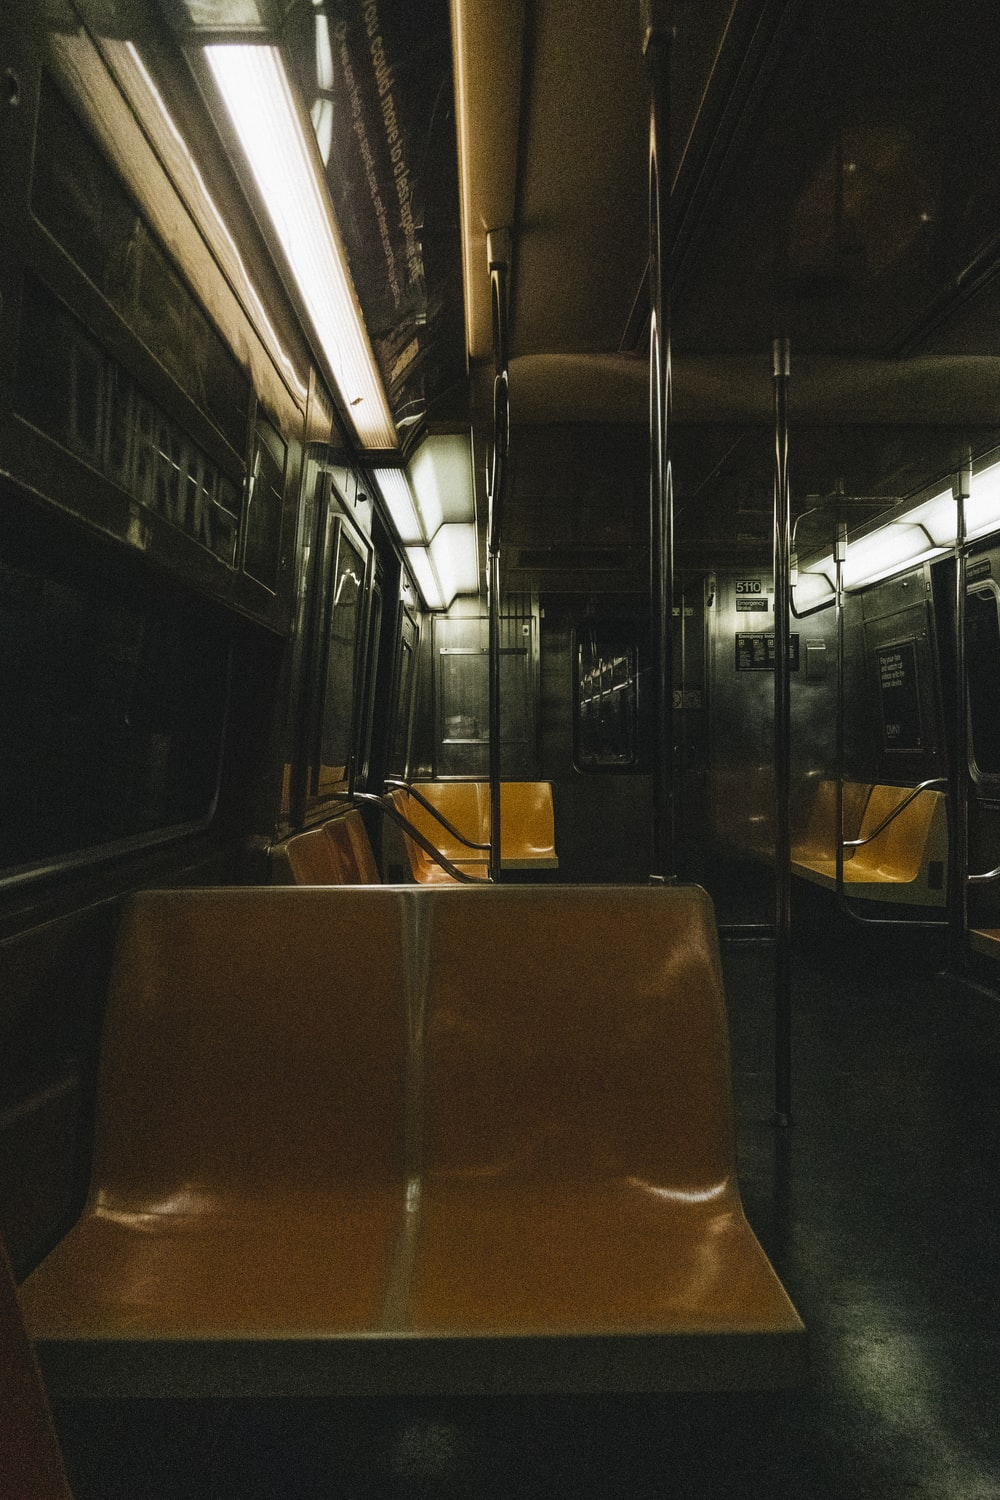 brown leather bus seat during night time